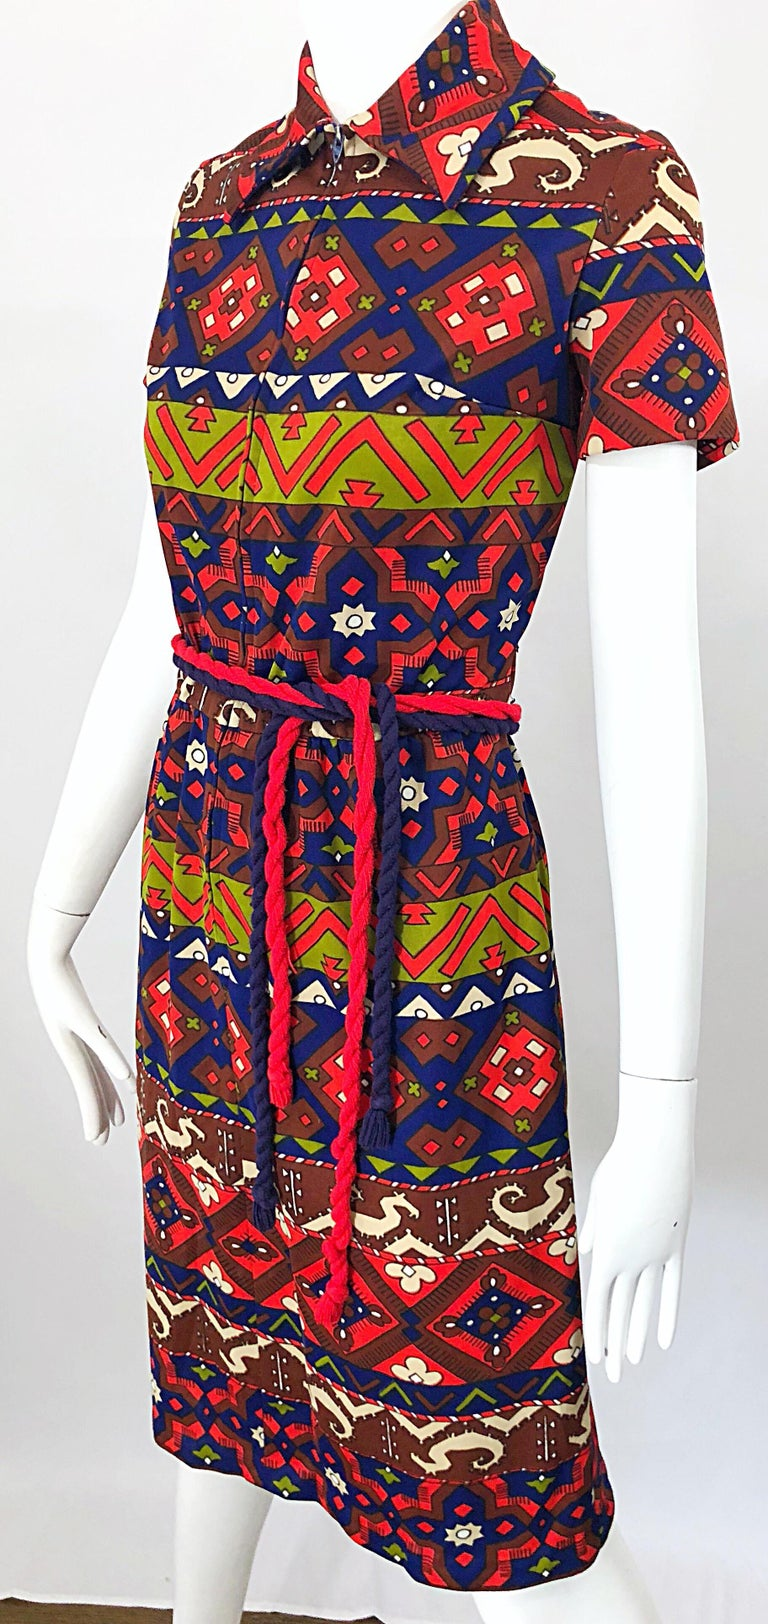 Women's 1970s Aztec Novelty Print Amazing Vintage 70s Knit Rope Belted Shirt Dress For Sale